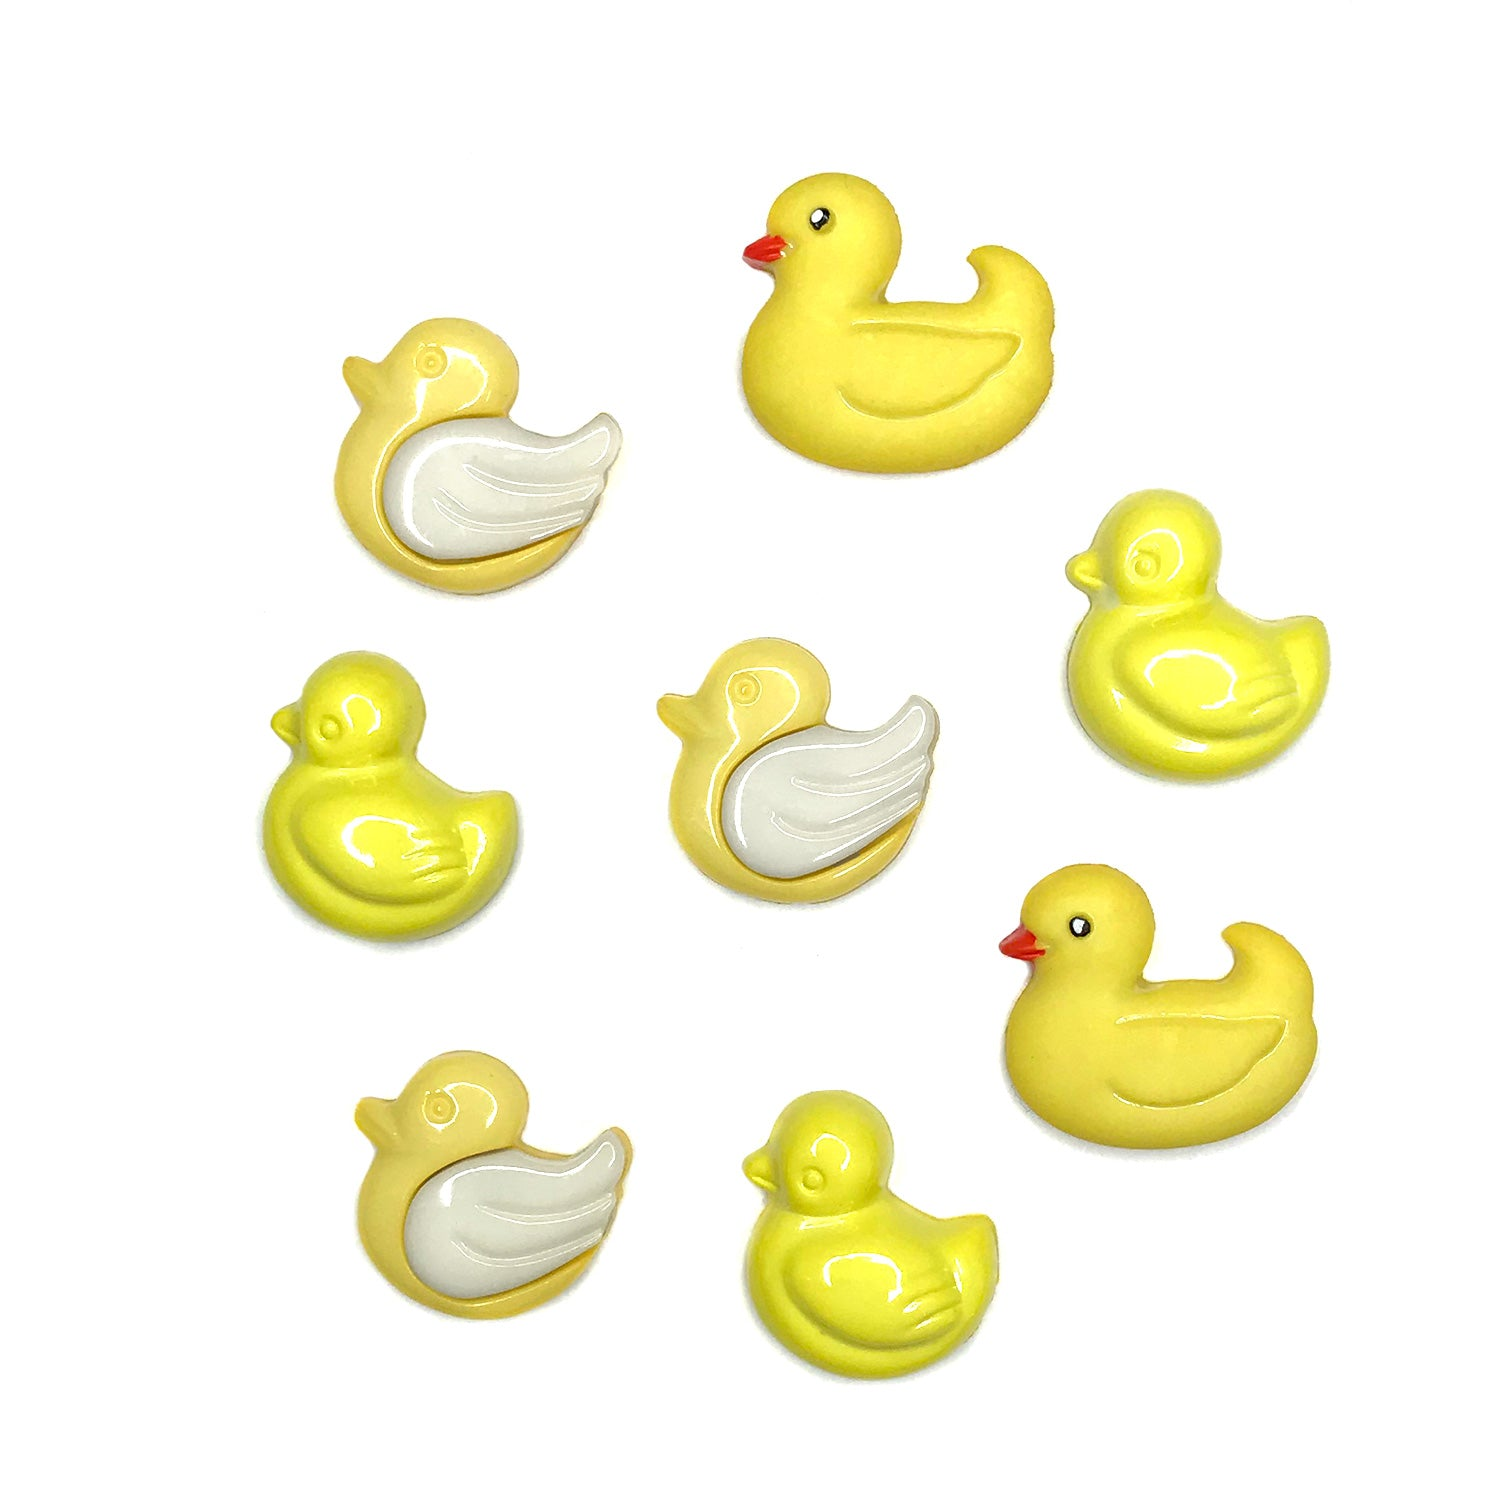 Duckies Theme Buttons